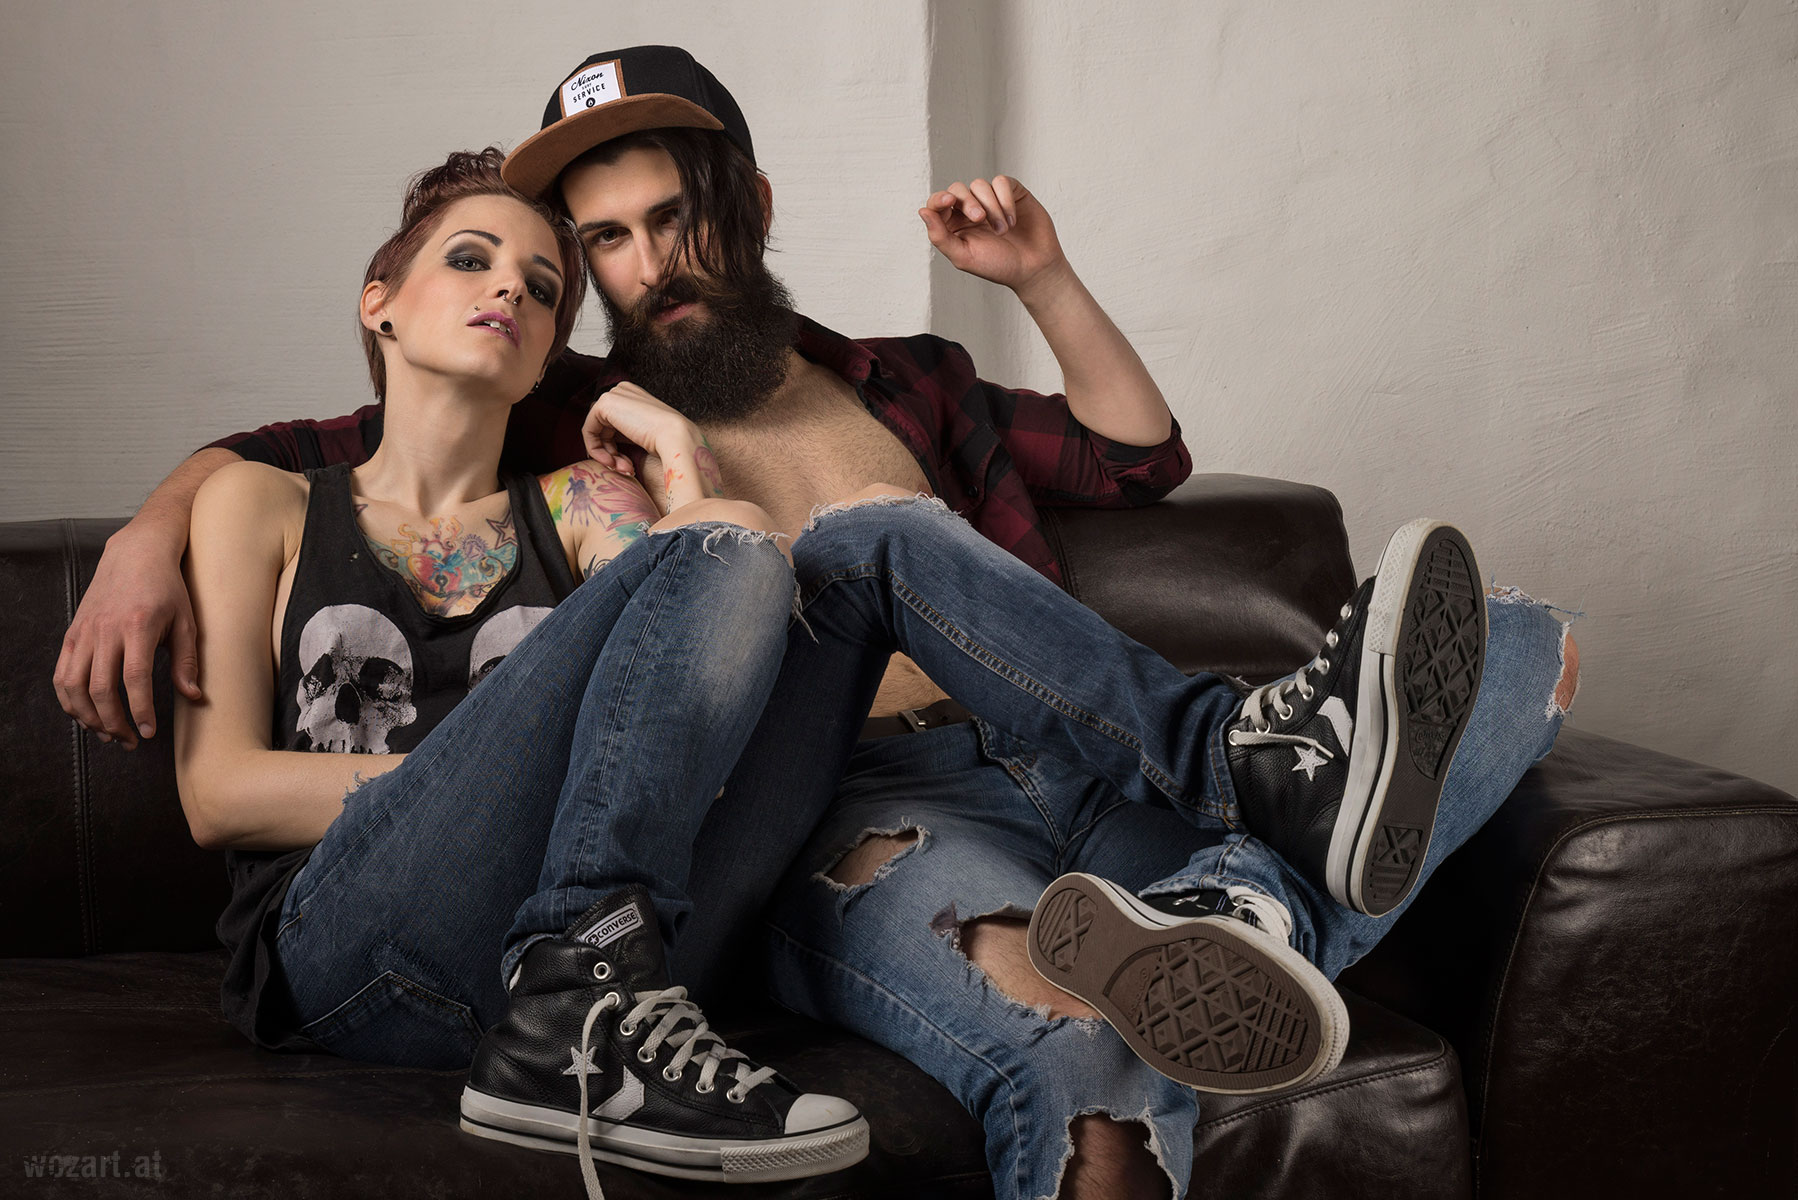 Jacky & Christian in Chucks